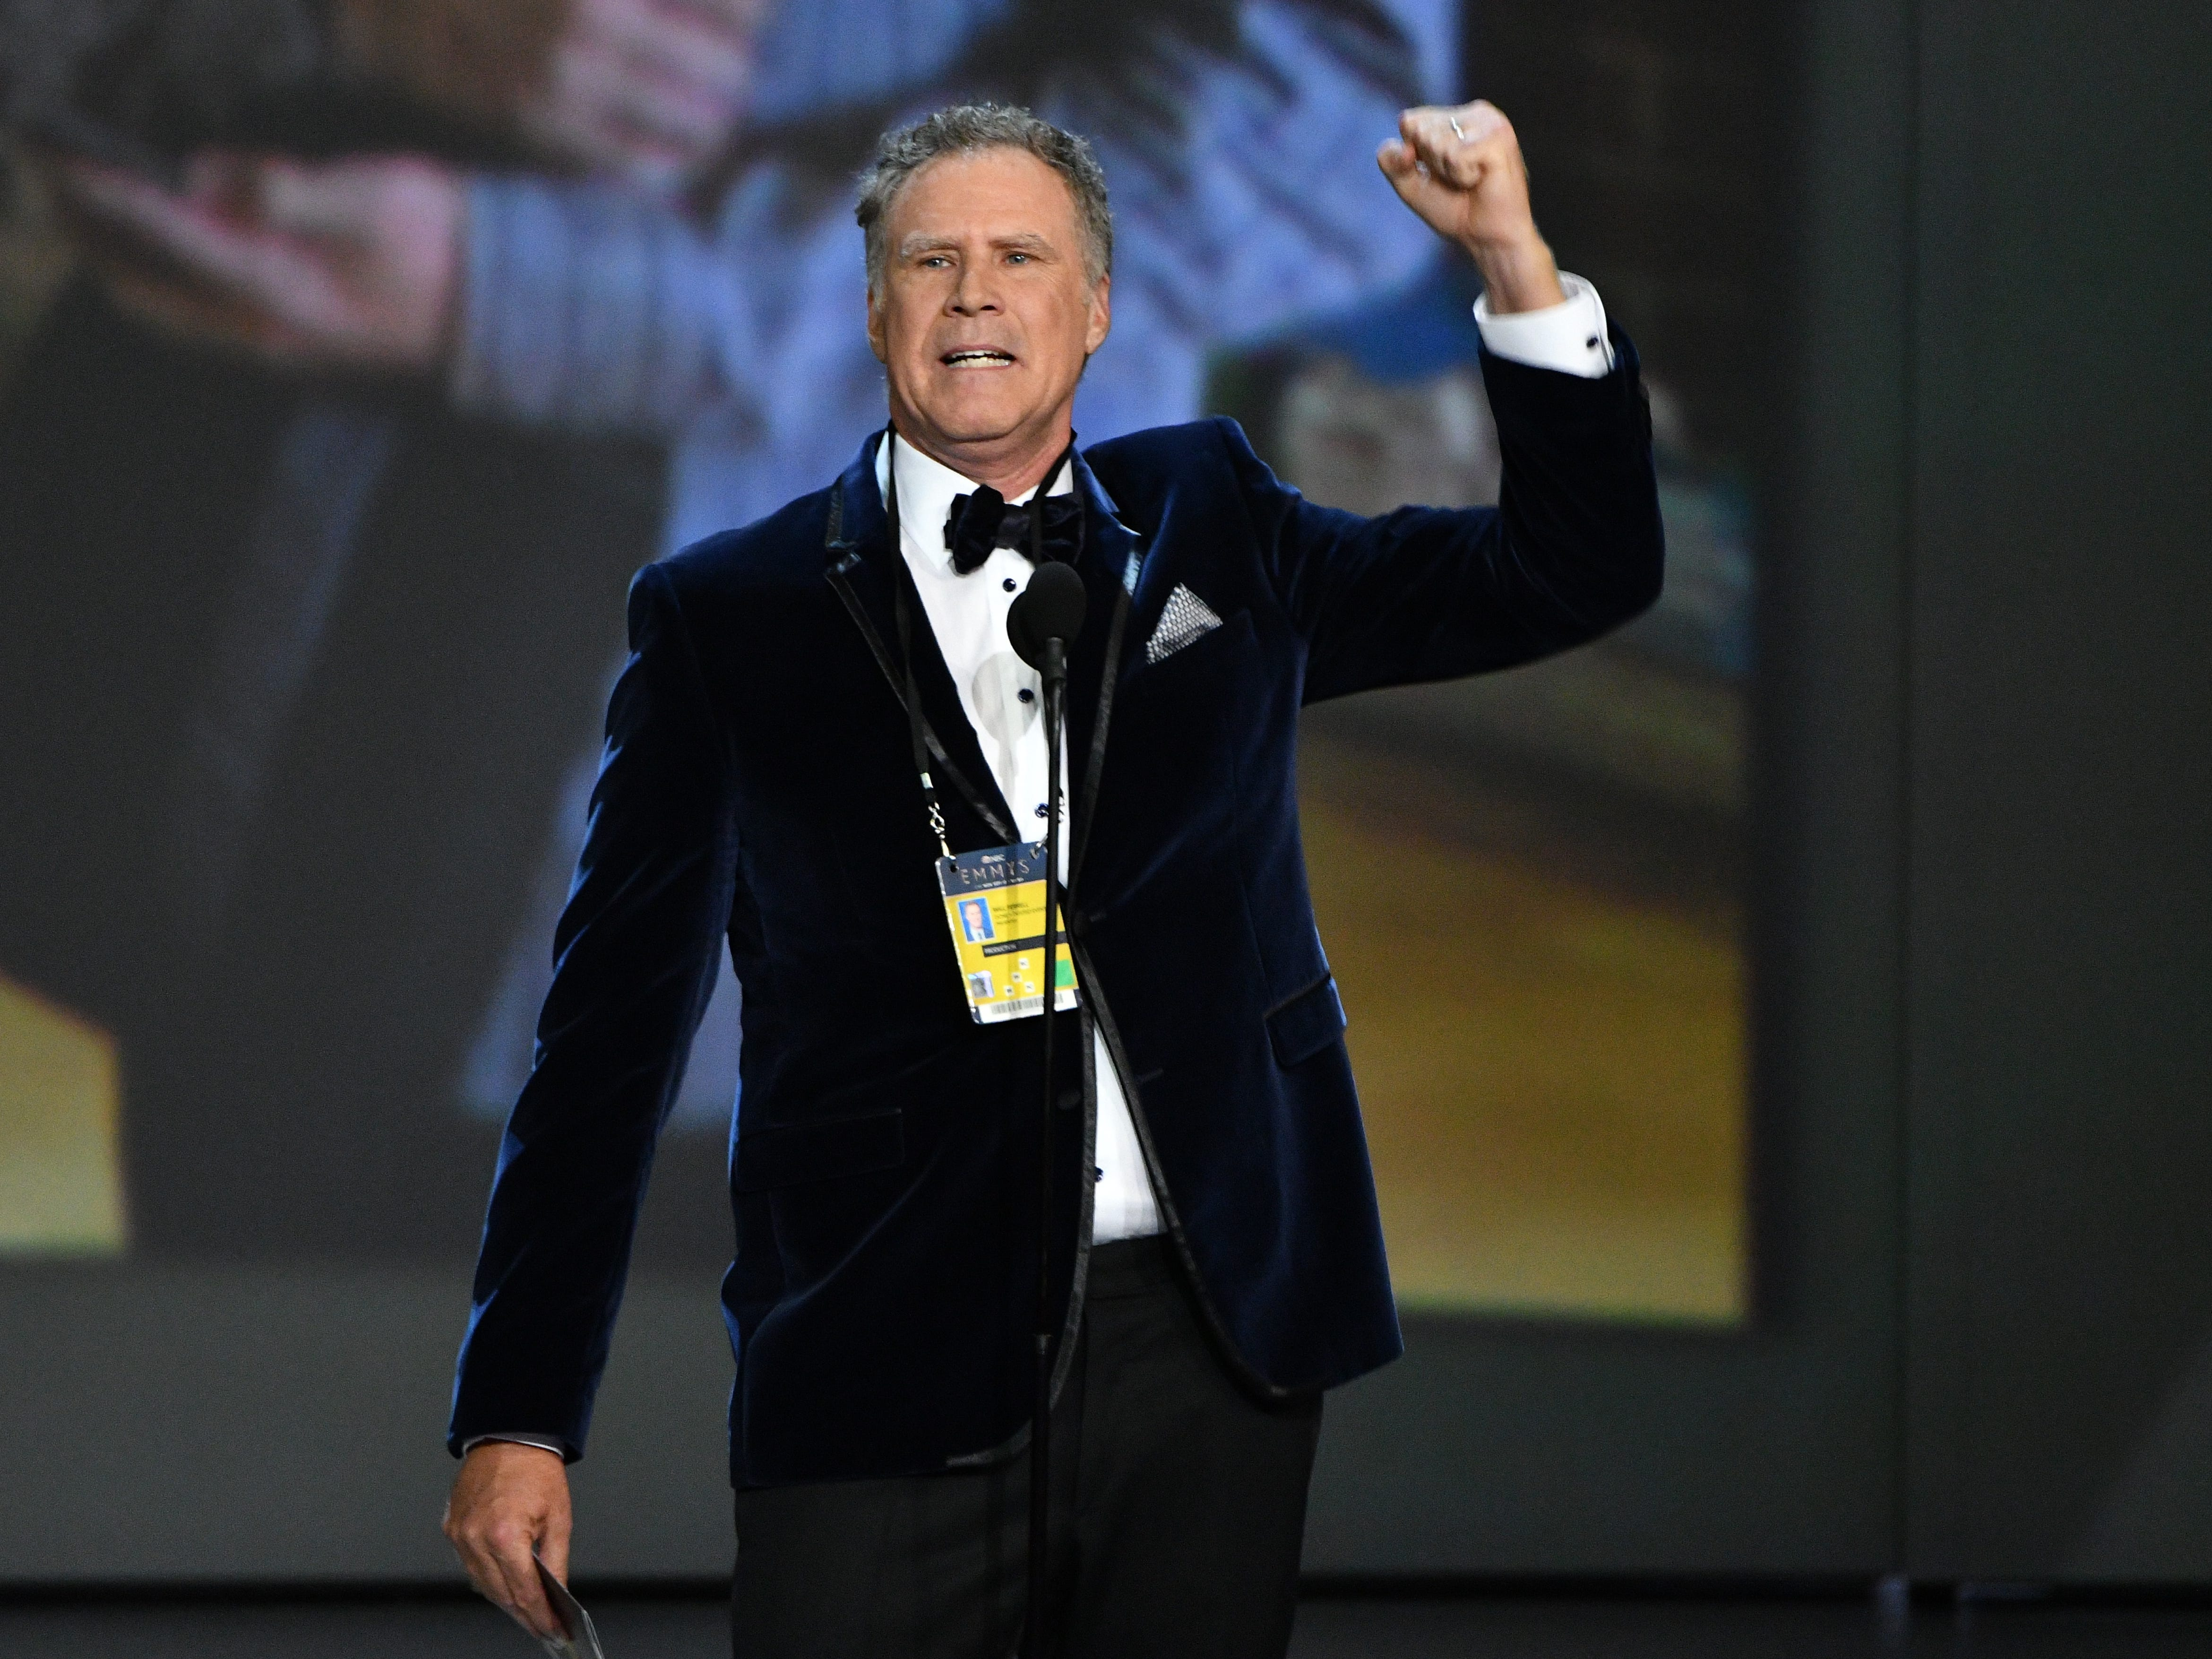 Will Ferrell presents the award for outstanding comedy series.